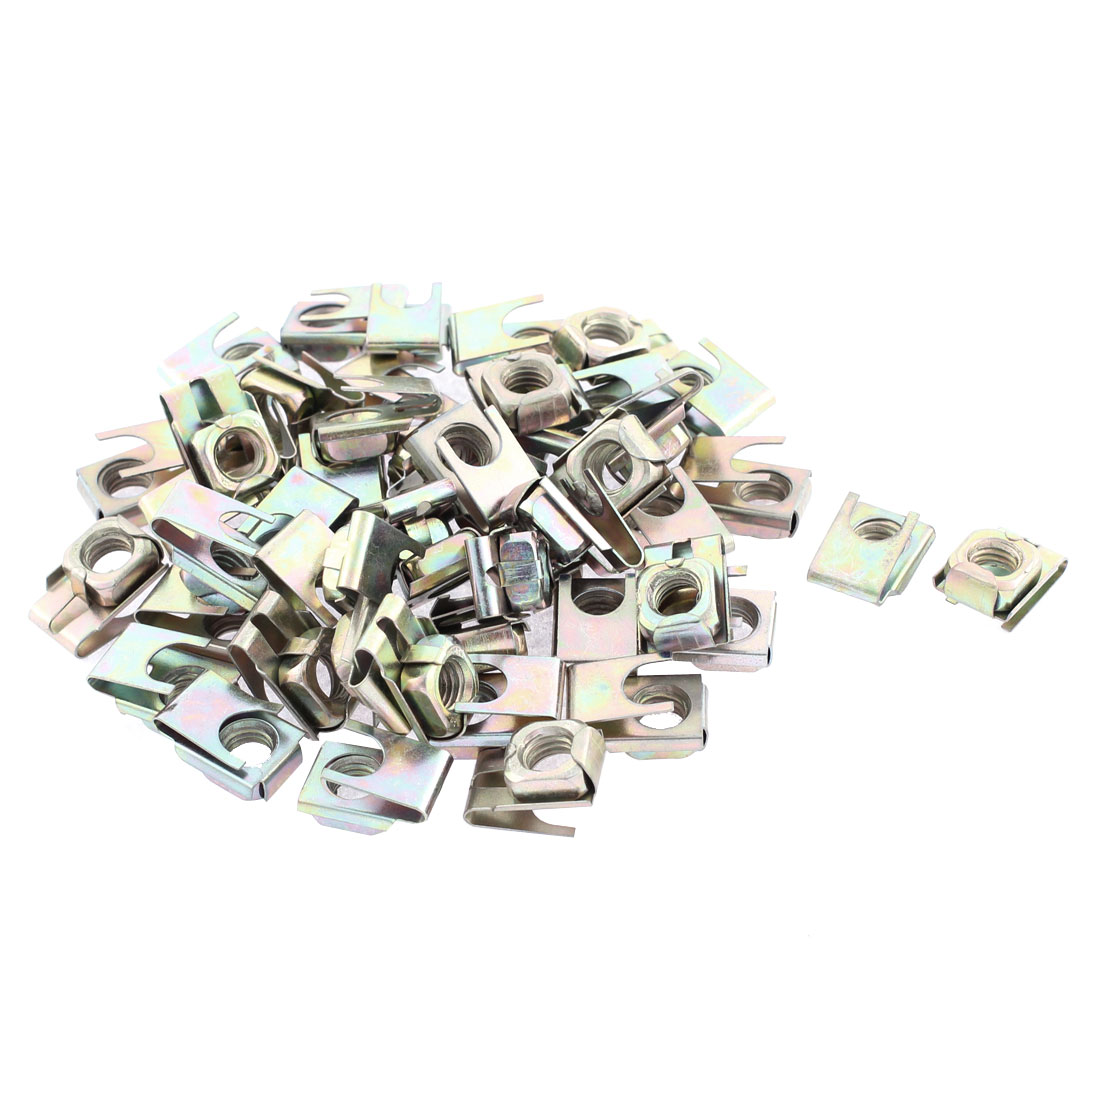 50 Pcs 22mm x 16mm Metal Plate U-Type Clips Speed Nuts for Auto Panel Fender